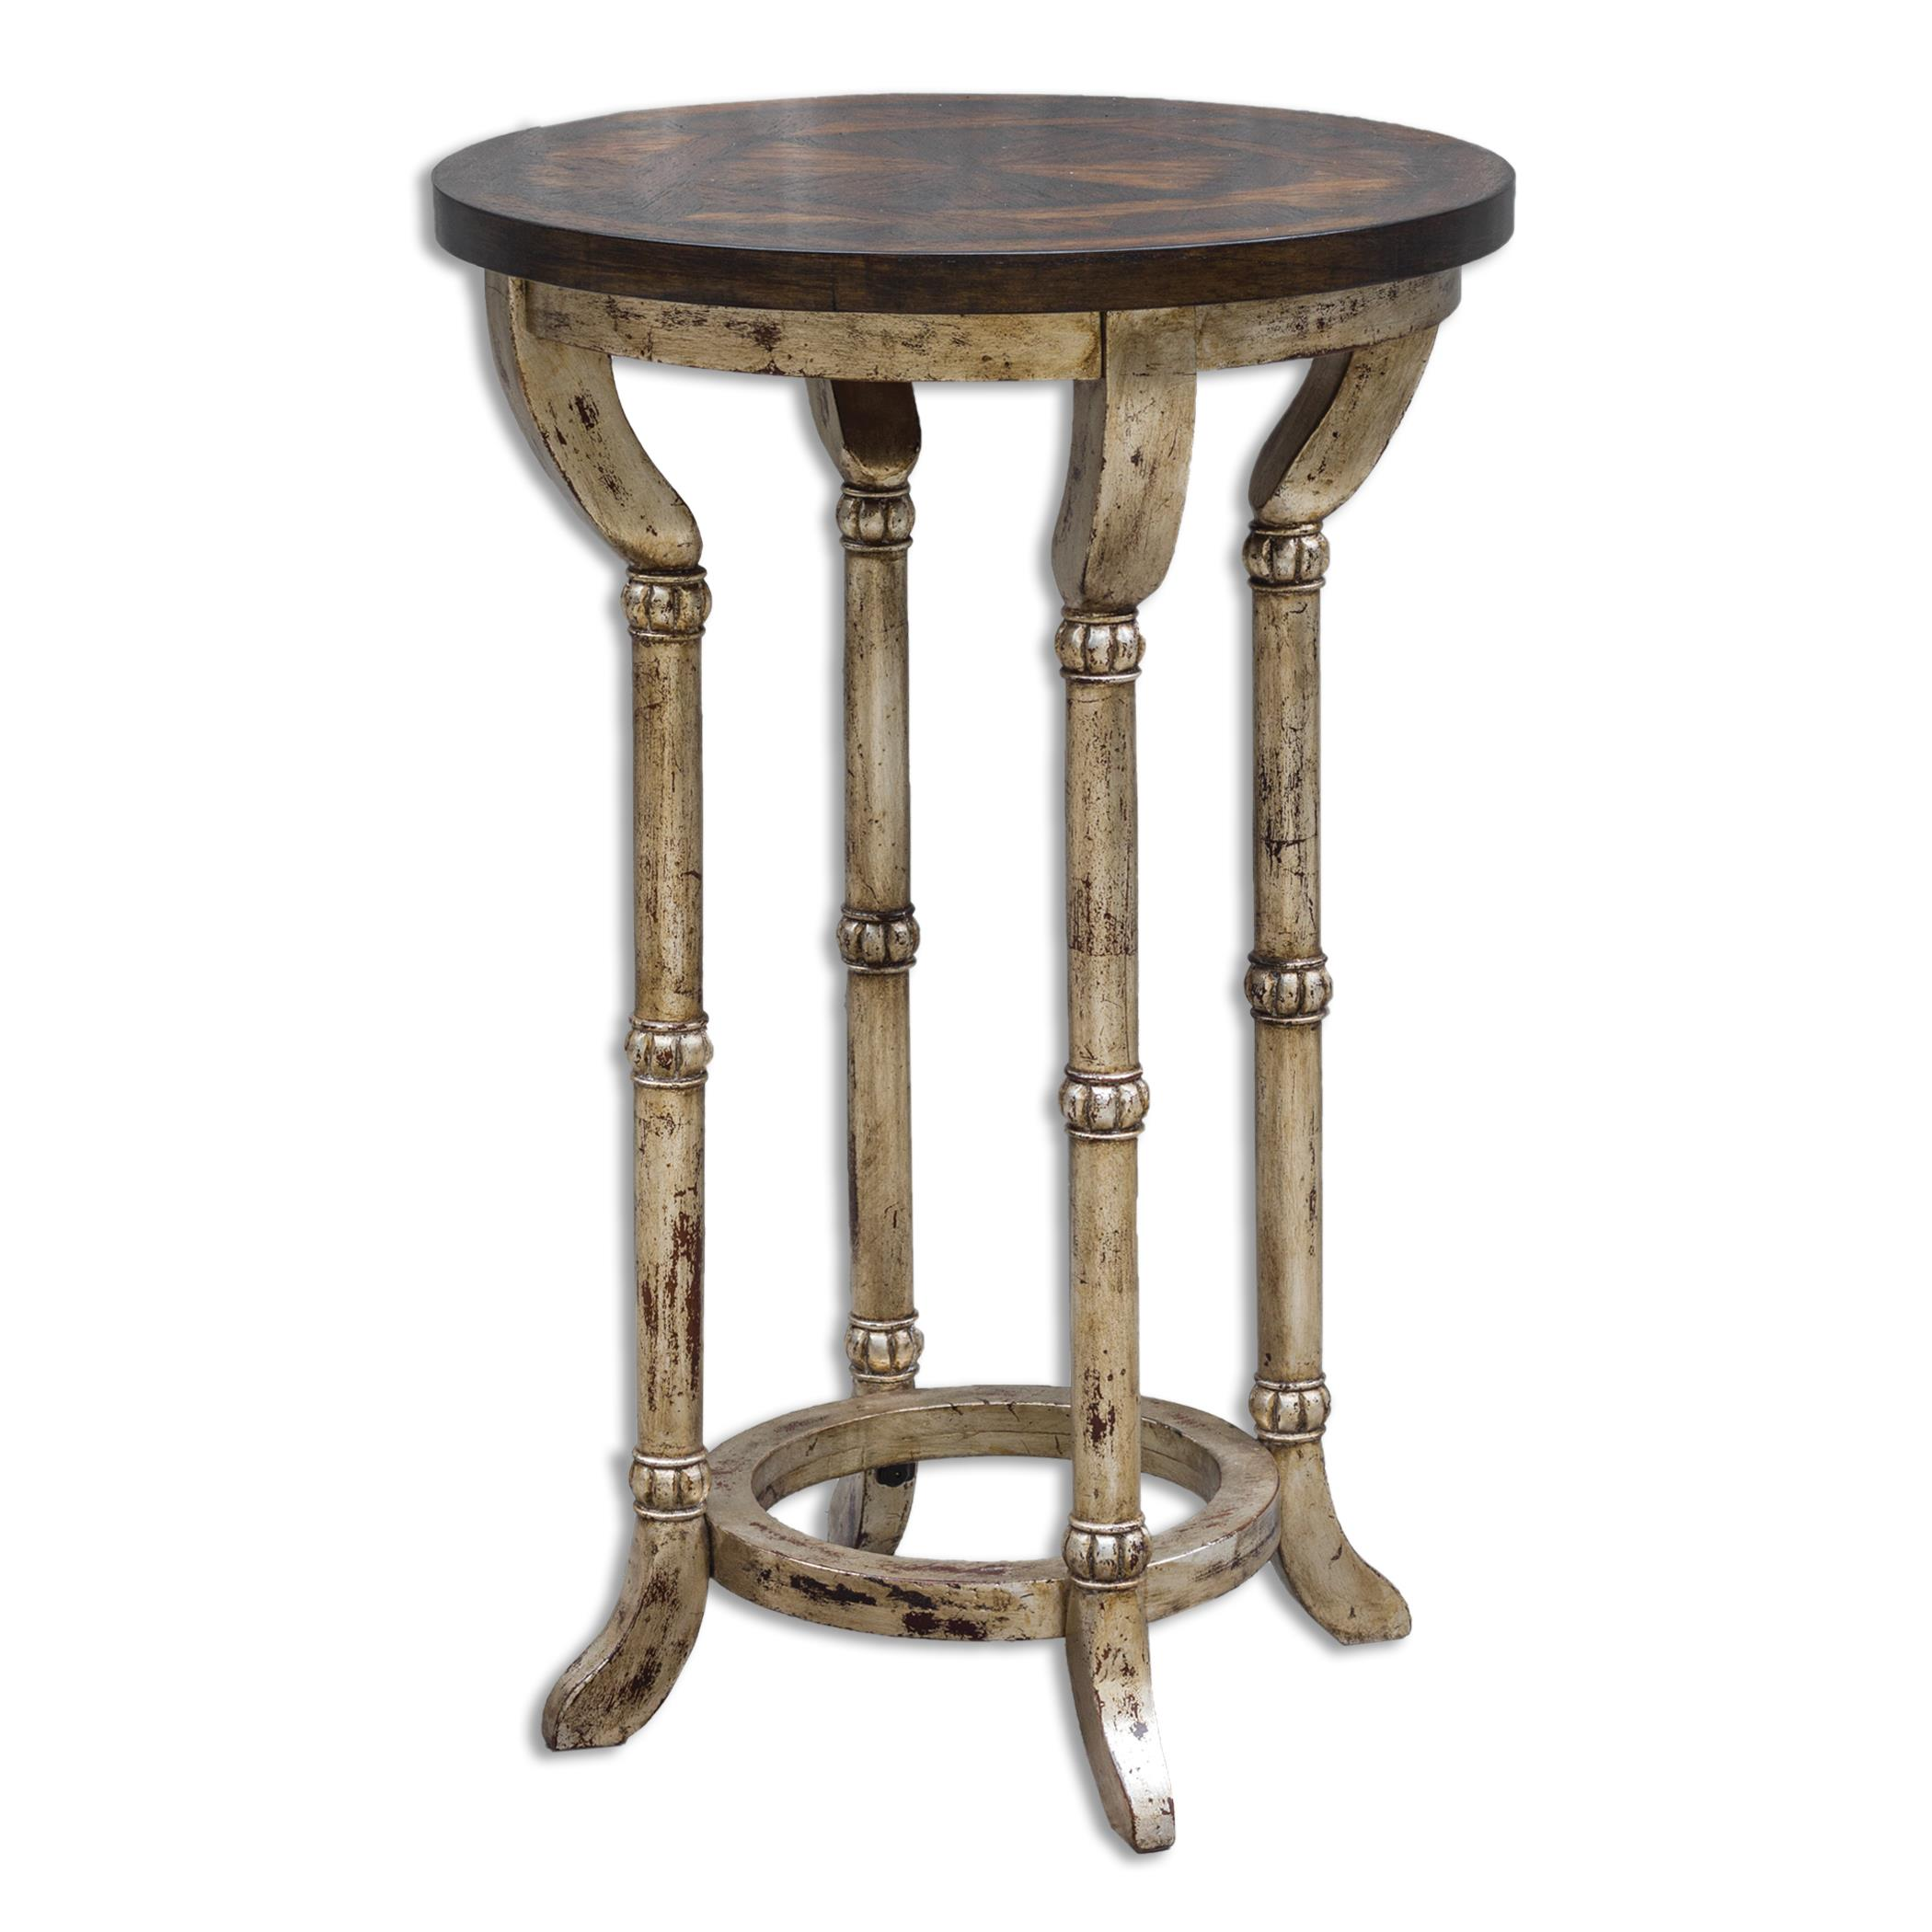 Uttermost Accent Furniture Malo Round Accent Table - Item Number: 25658